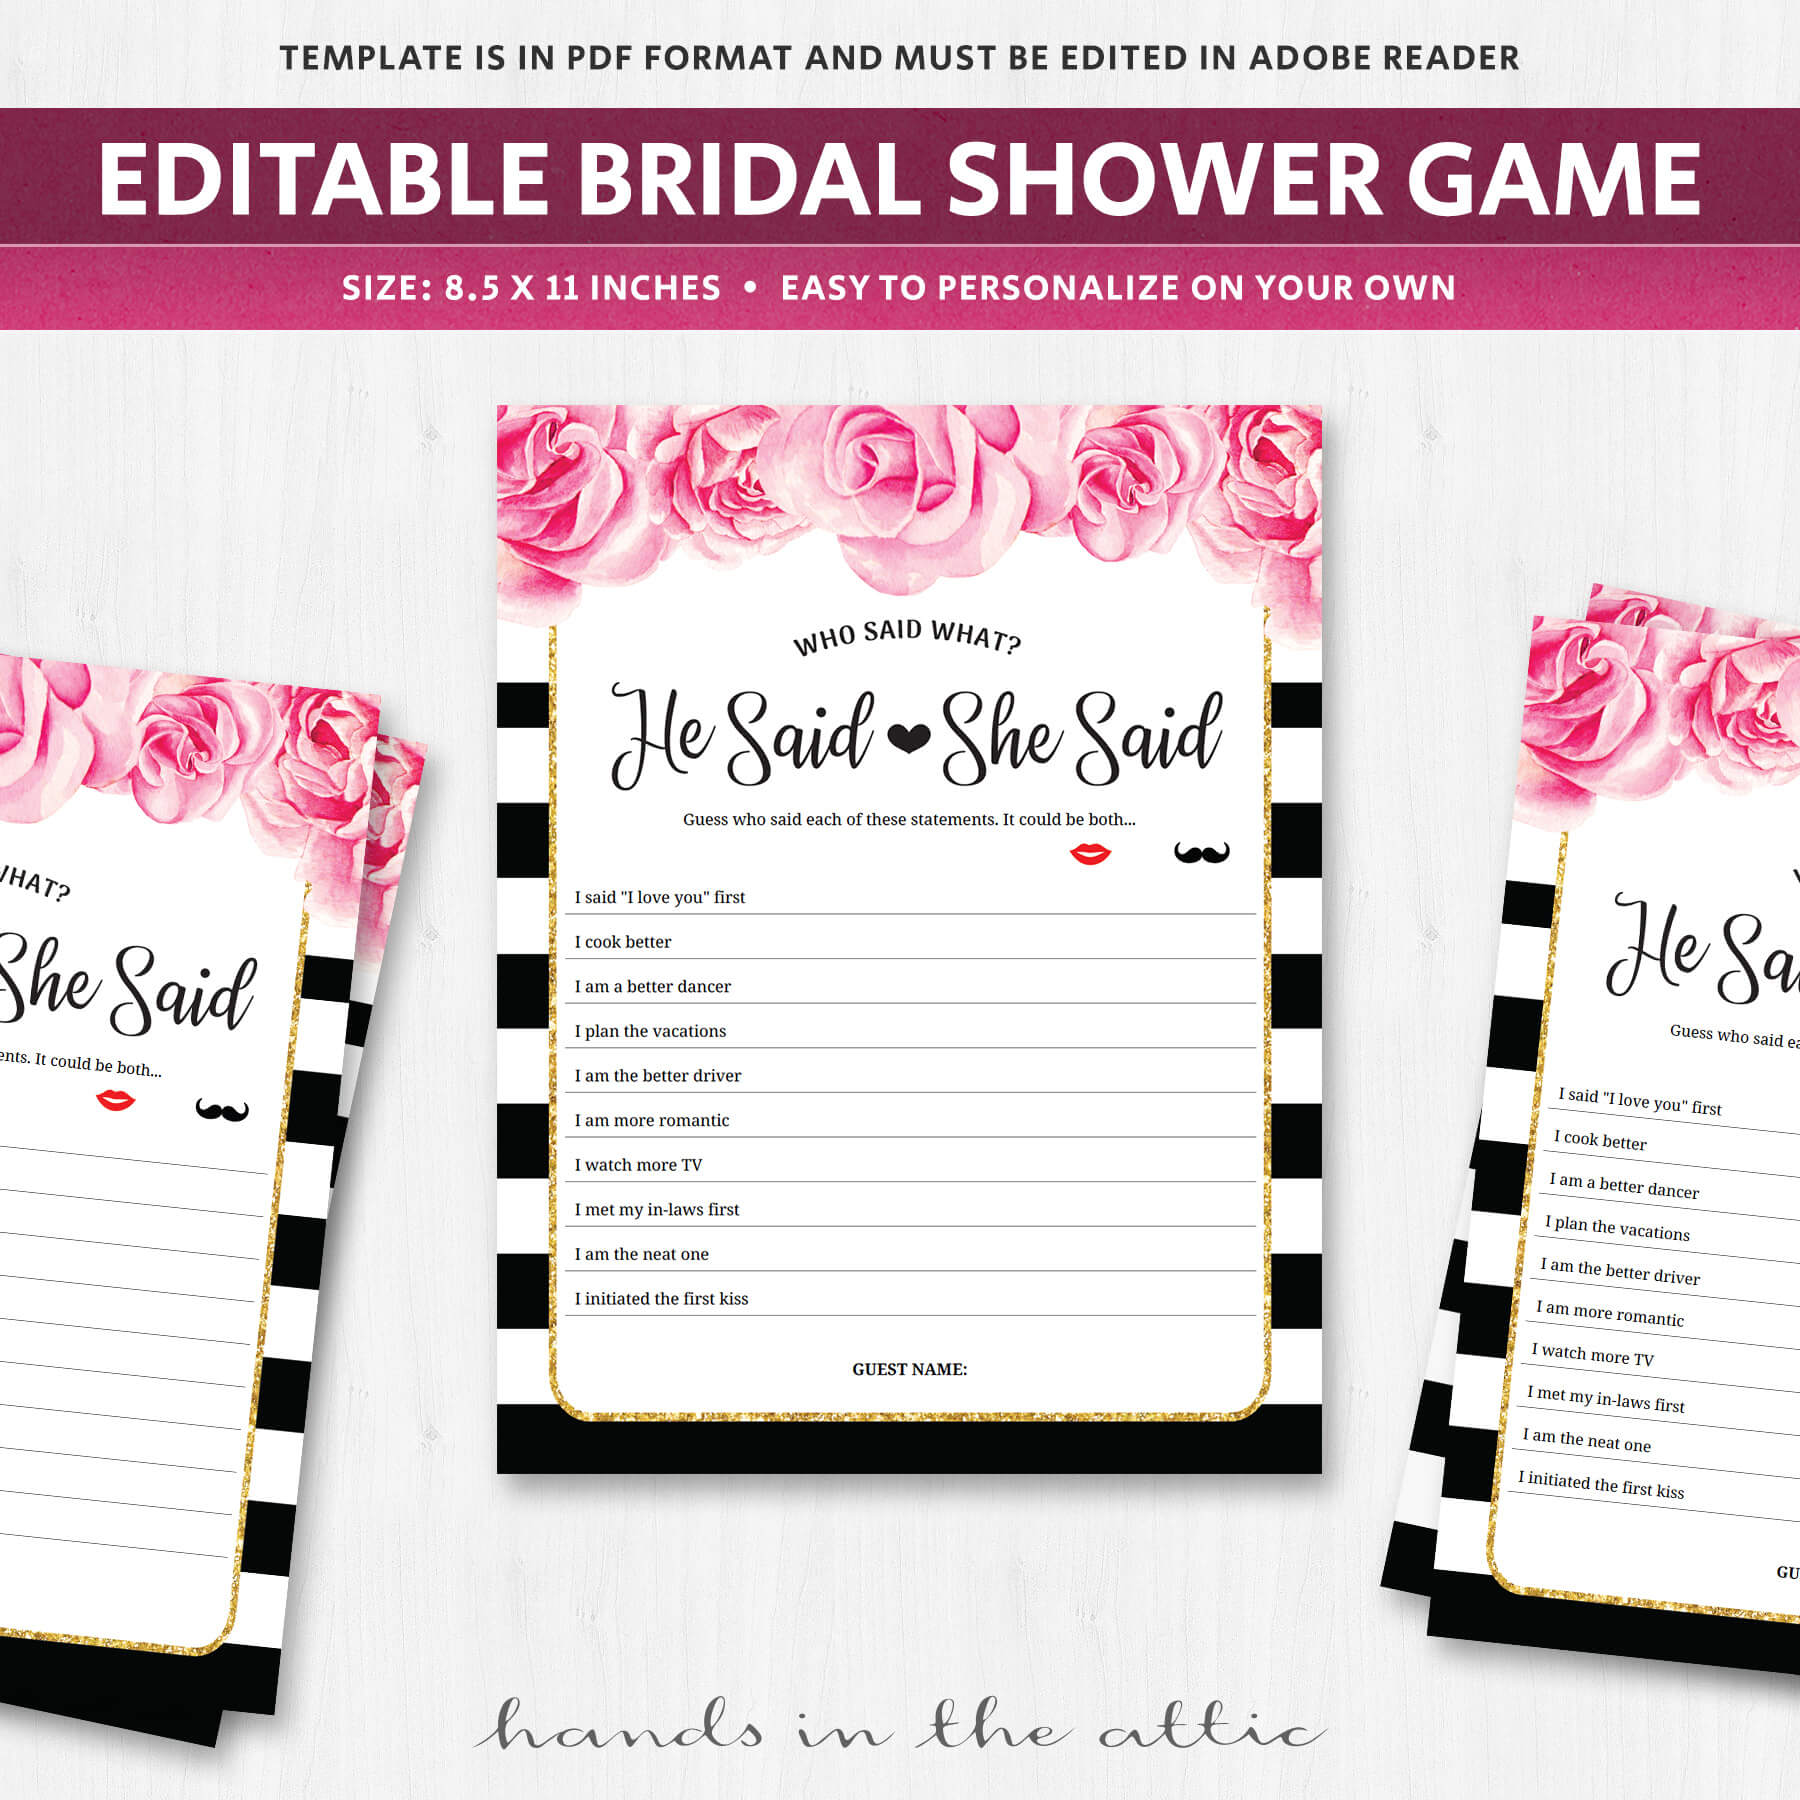 image regarding Bridal Shower Games Printable titled The Shoe Video game - Printable Bridal Shower Match - Black and White